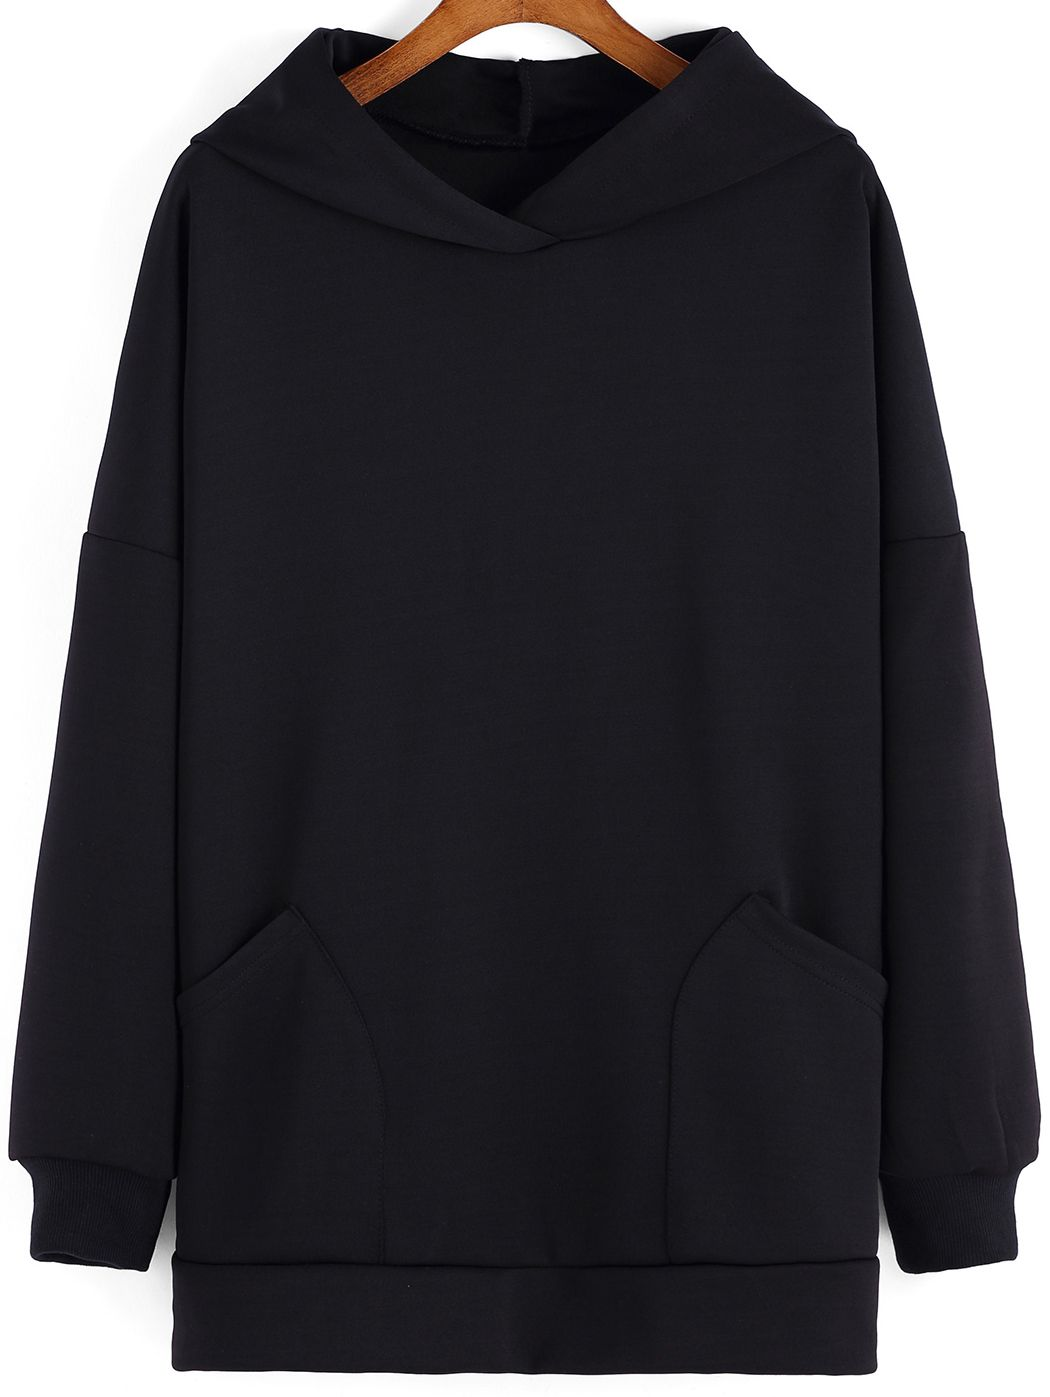 Black Hooded Pockets Loose Sweatshirt , High Quality Guarantee with Low Price!